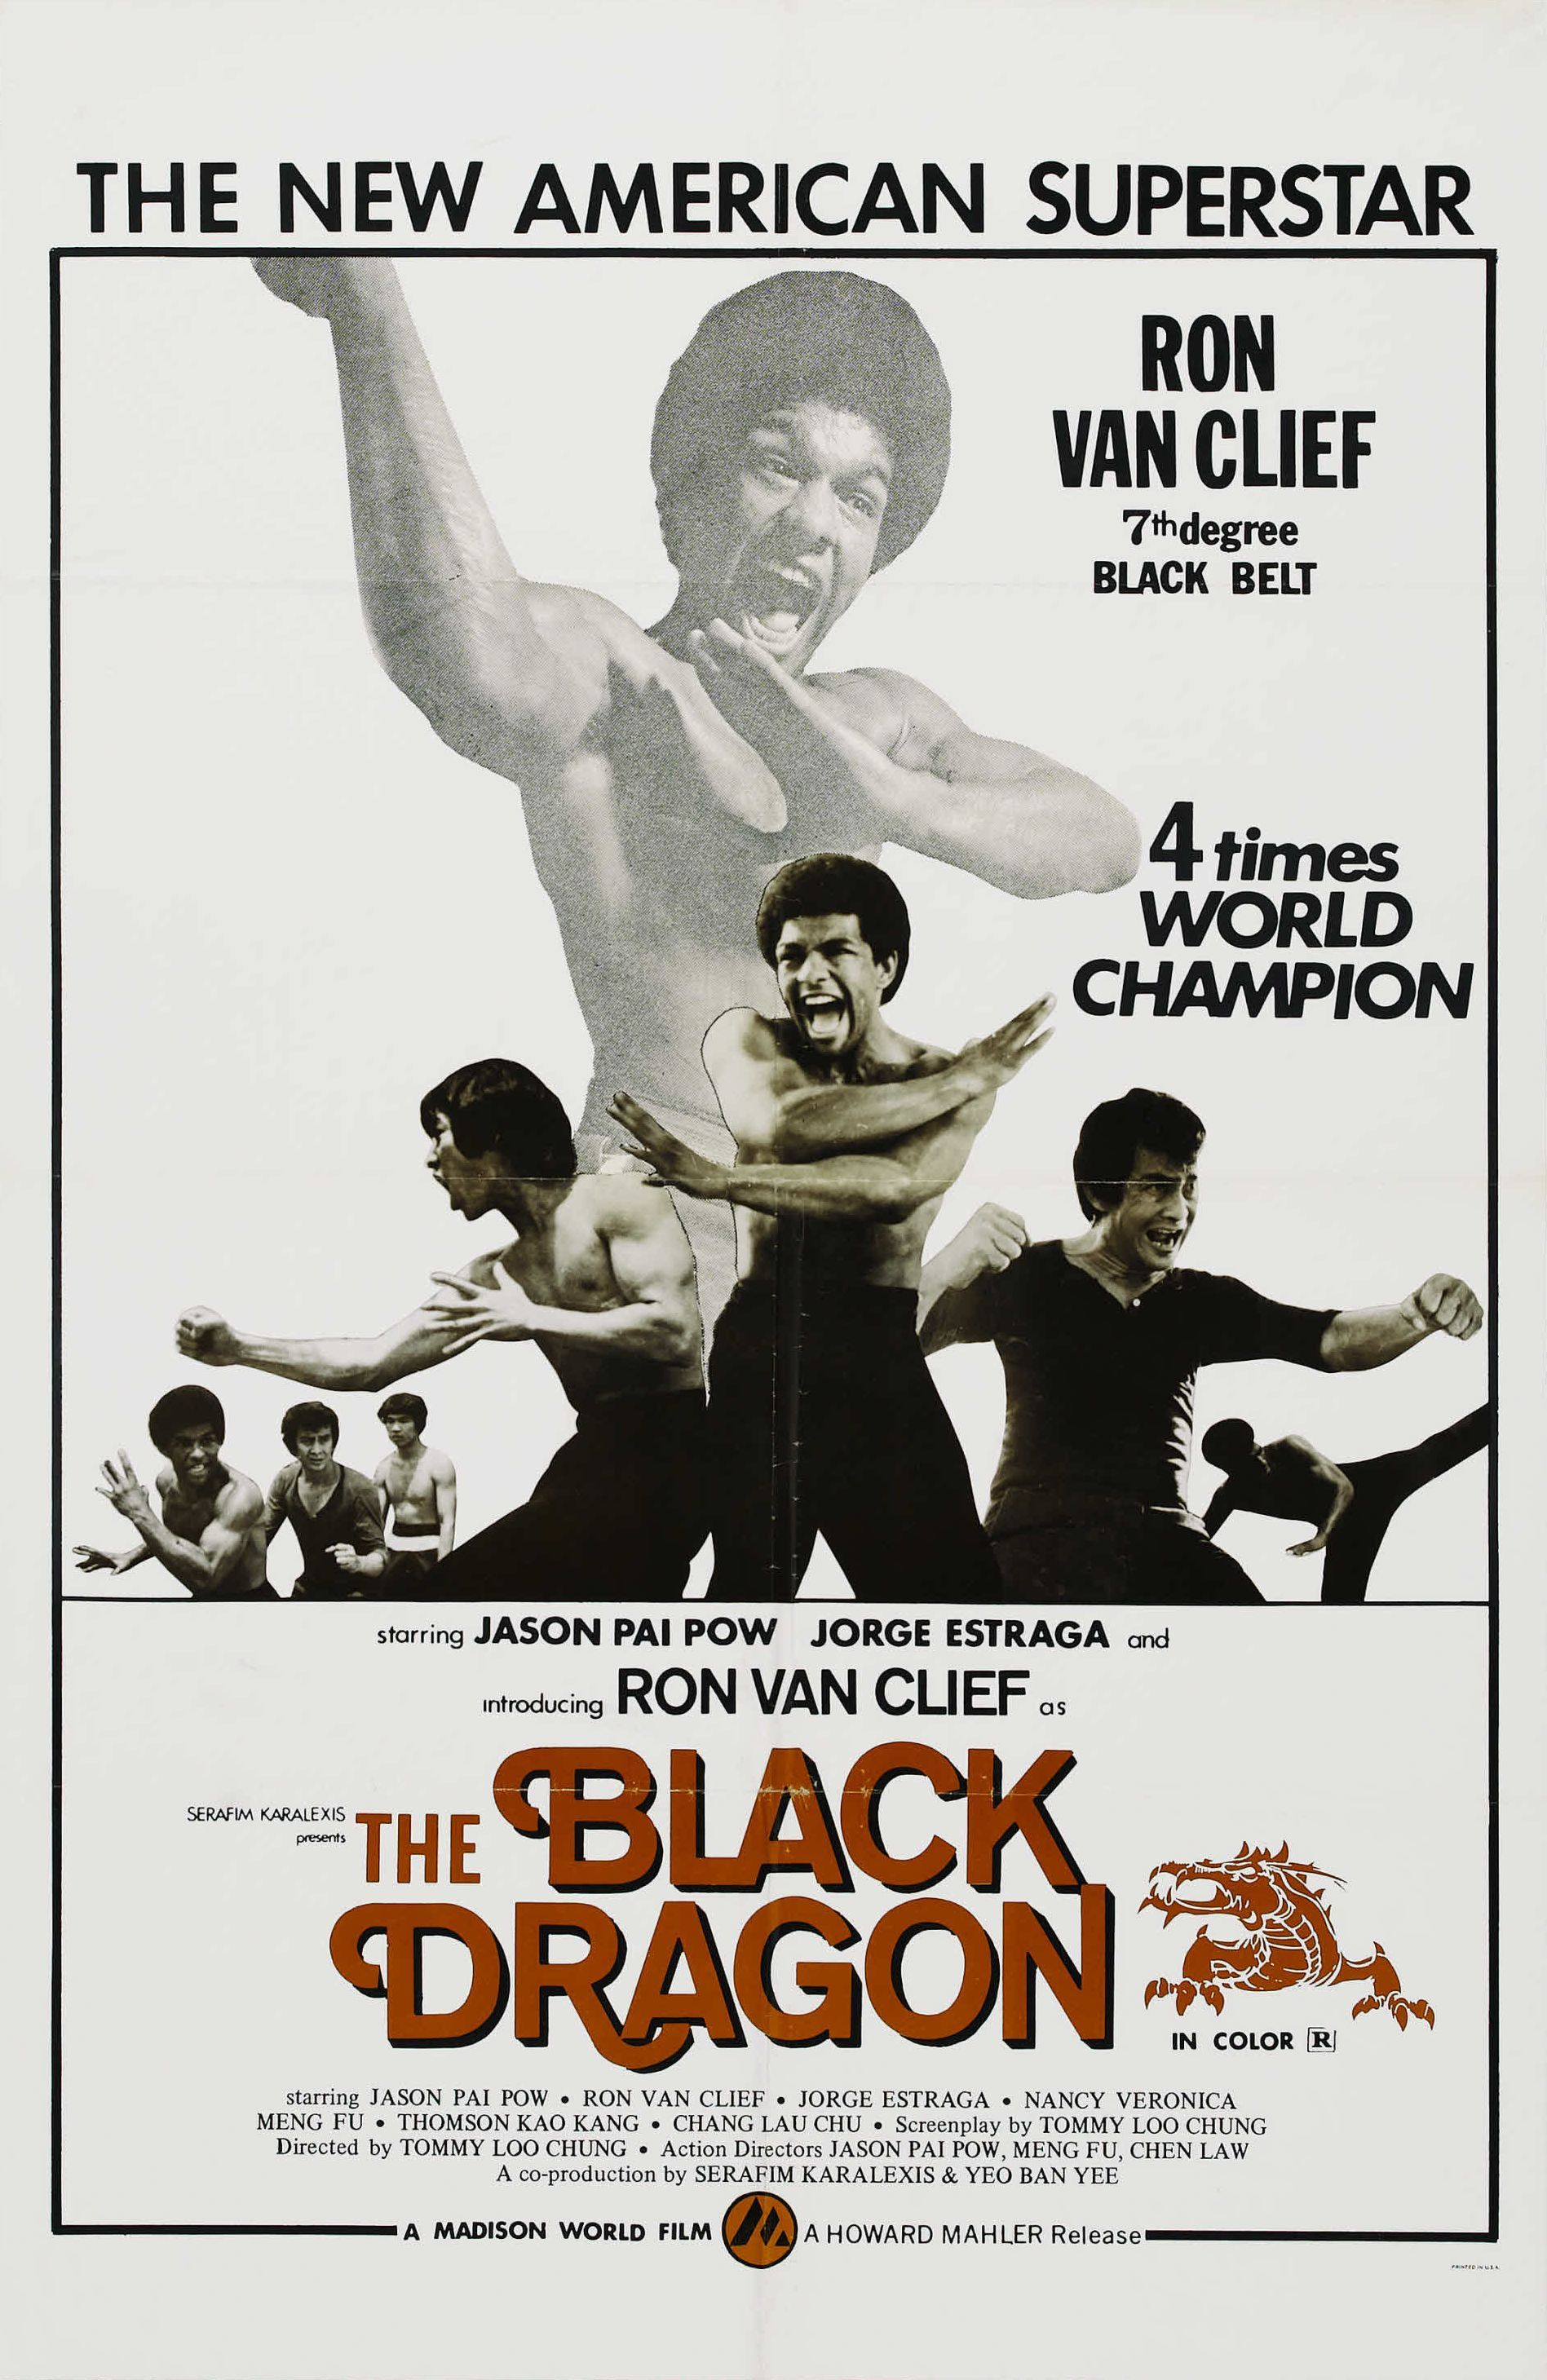 Blaxploitation Film Posters Wrong Side Of The Art Part 8 Blaxploitation Film Black Dragon Movie Posters